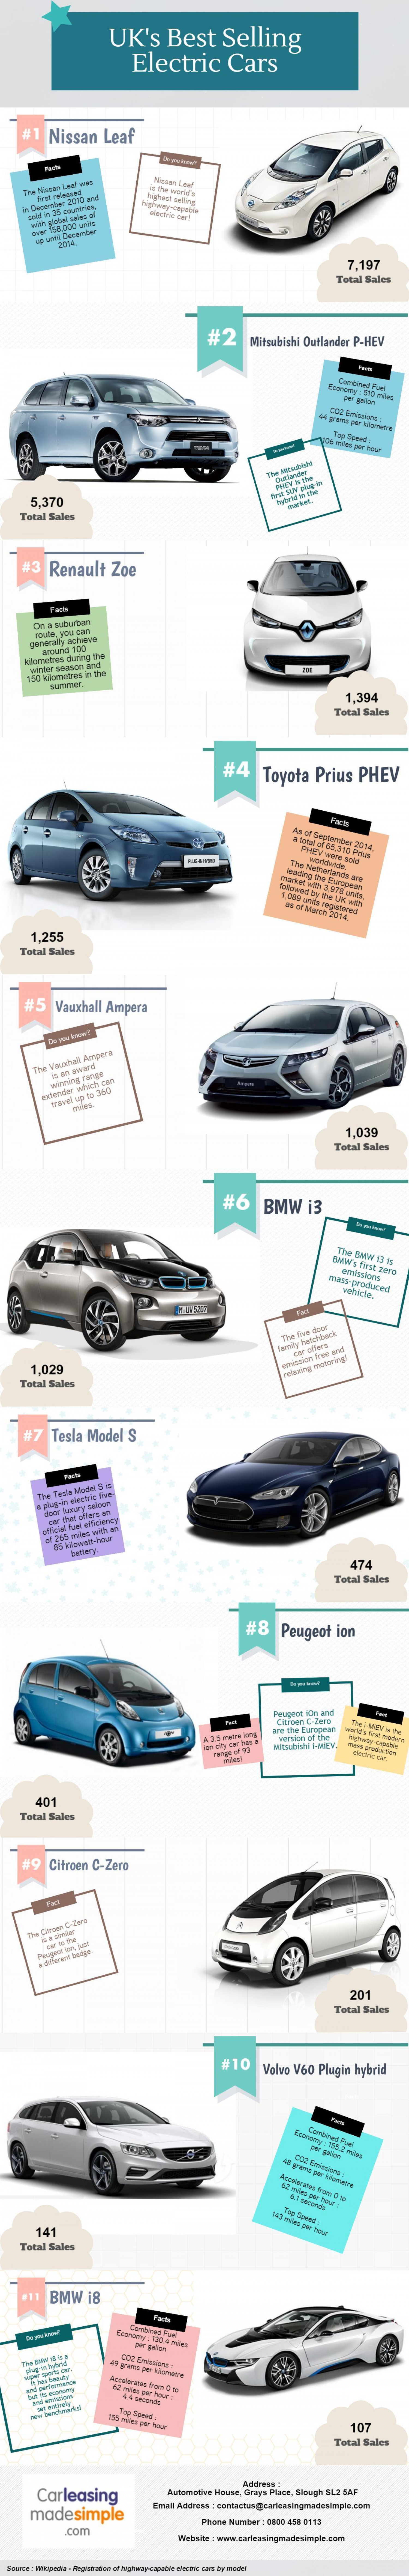 UK's Best Selling Electric Cars Infographic